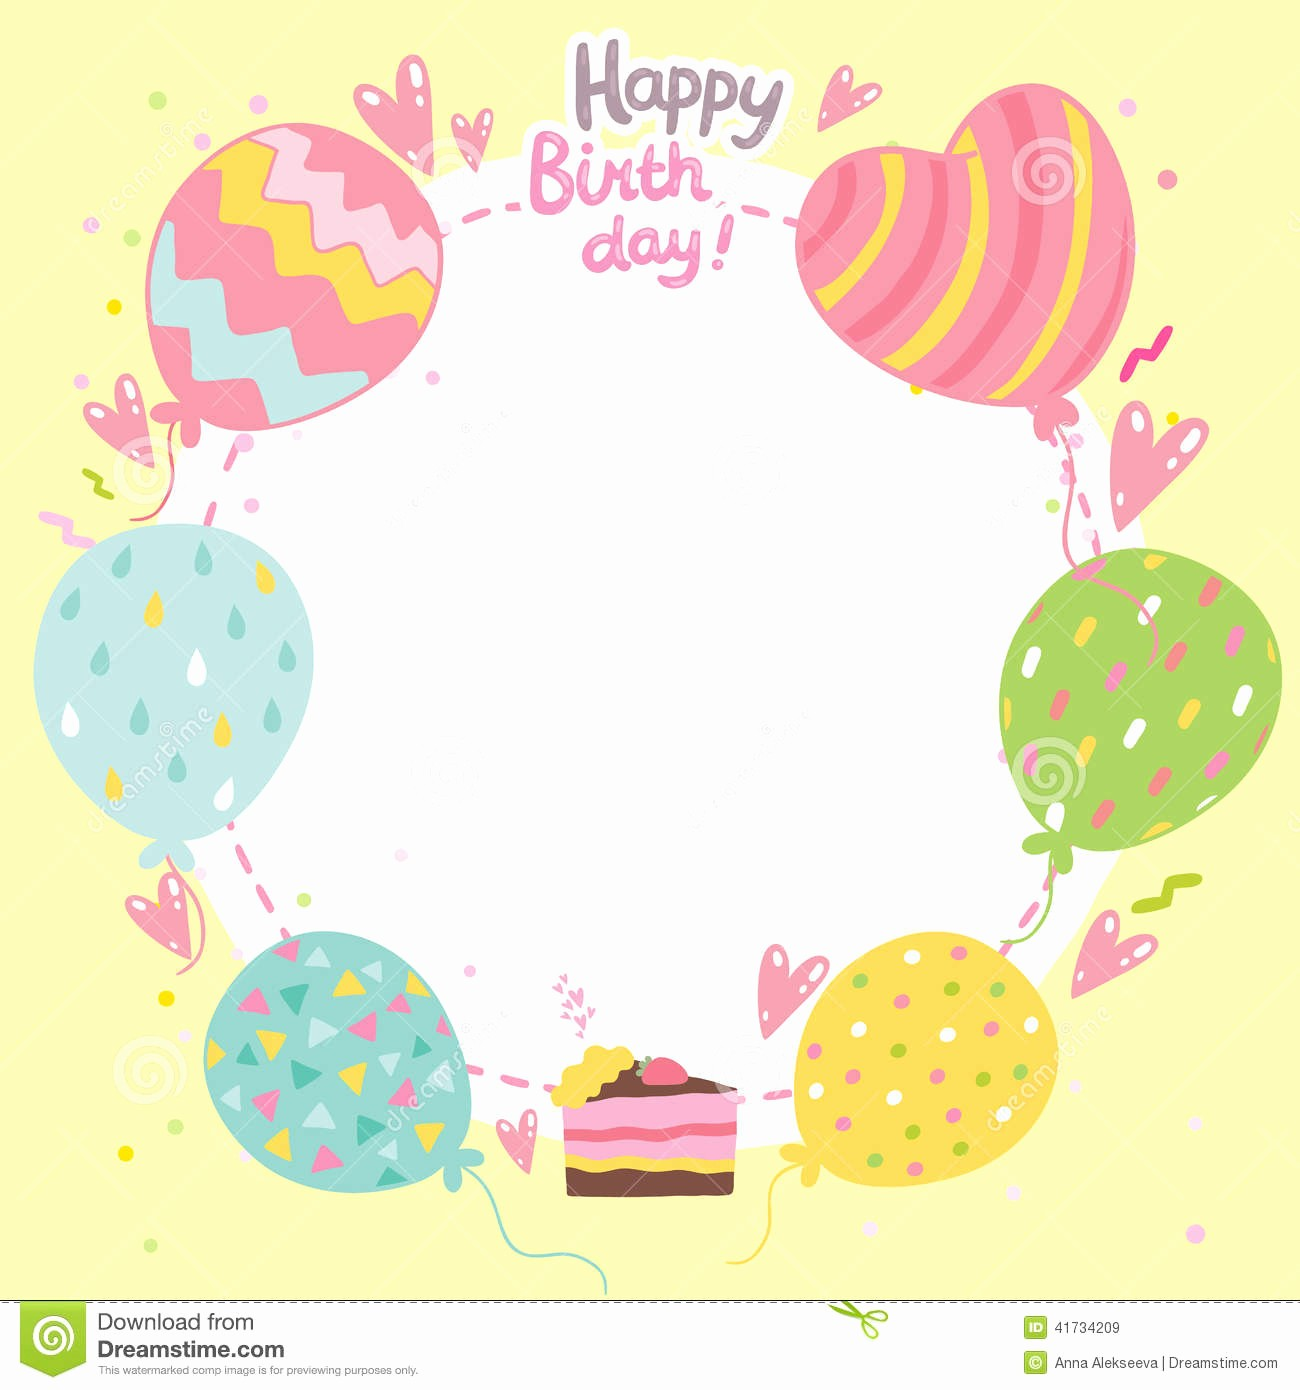 Birthday Card Template for Word Lovely Birthday Card Template